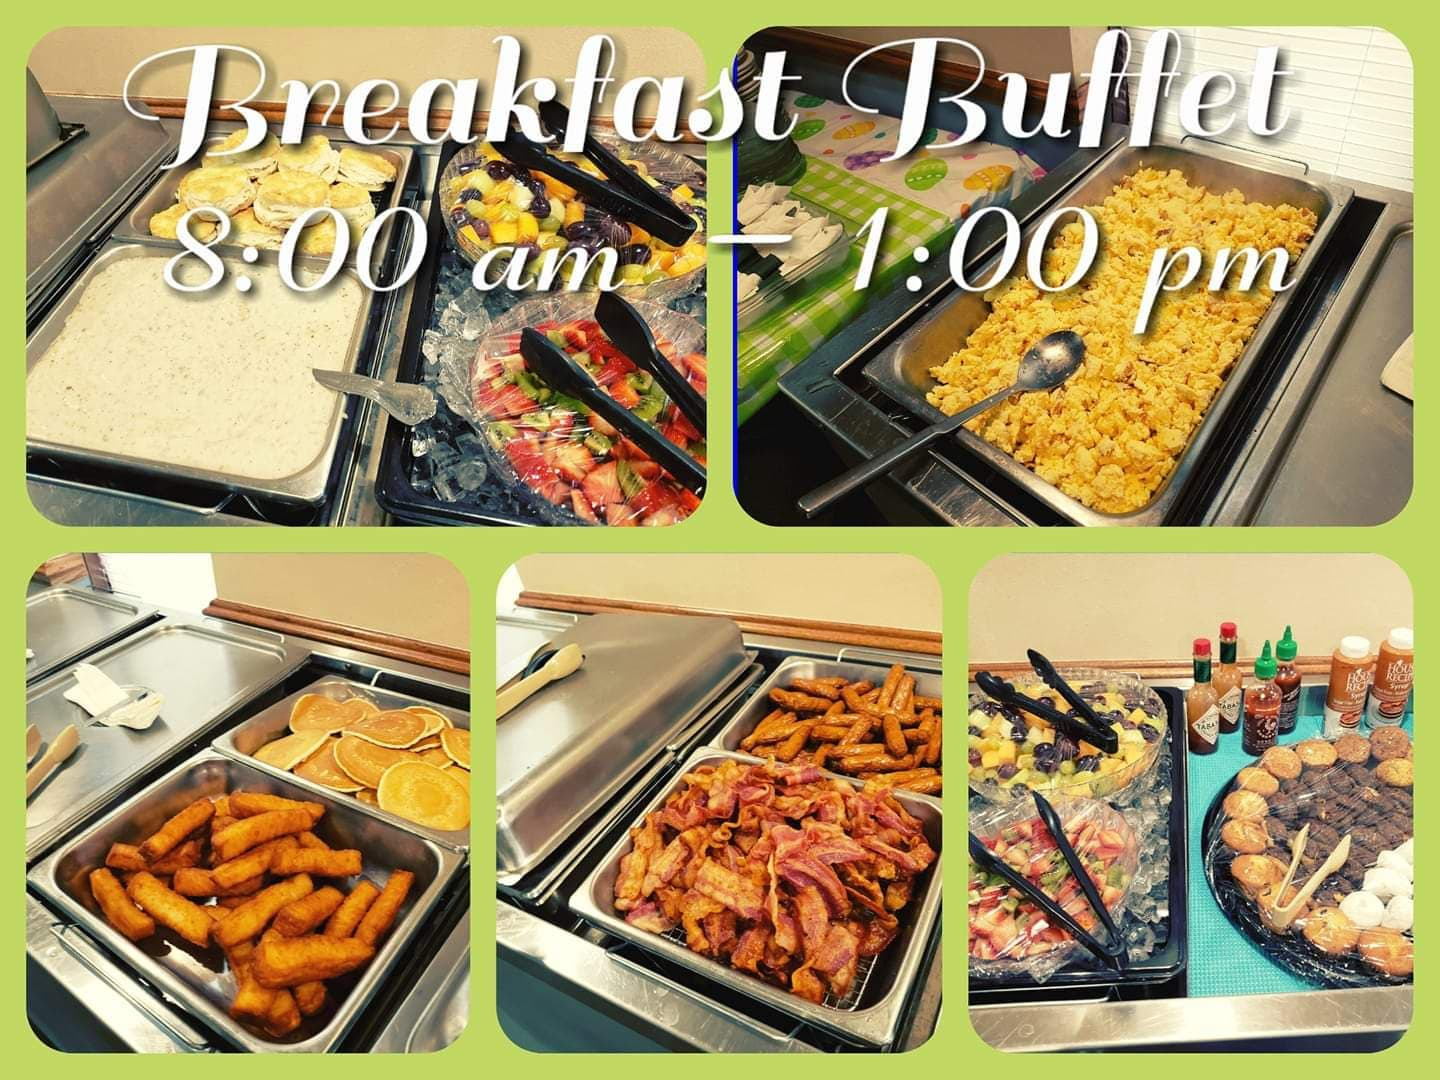 https://0201.nccdn.net/1_2/000/000/193/172/Breakfast-Buffet-1440x1080.jpg